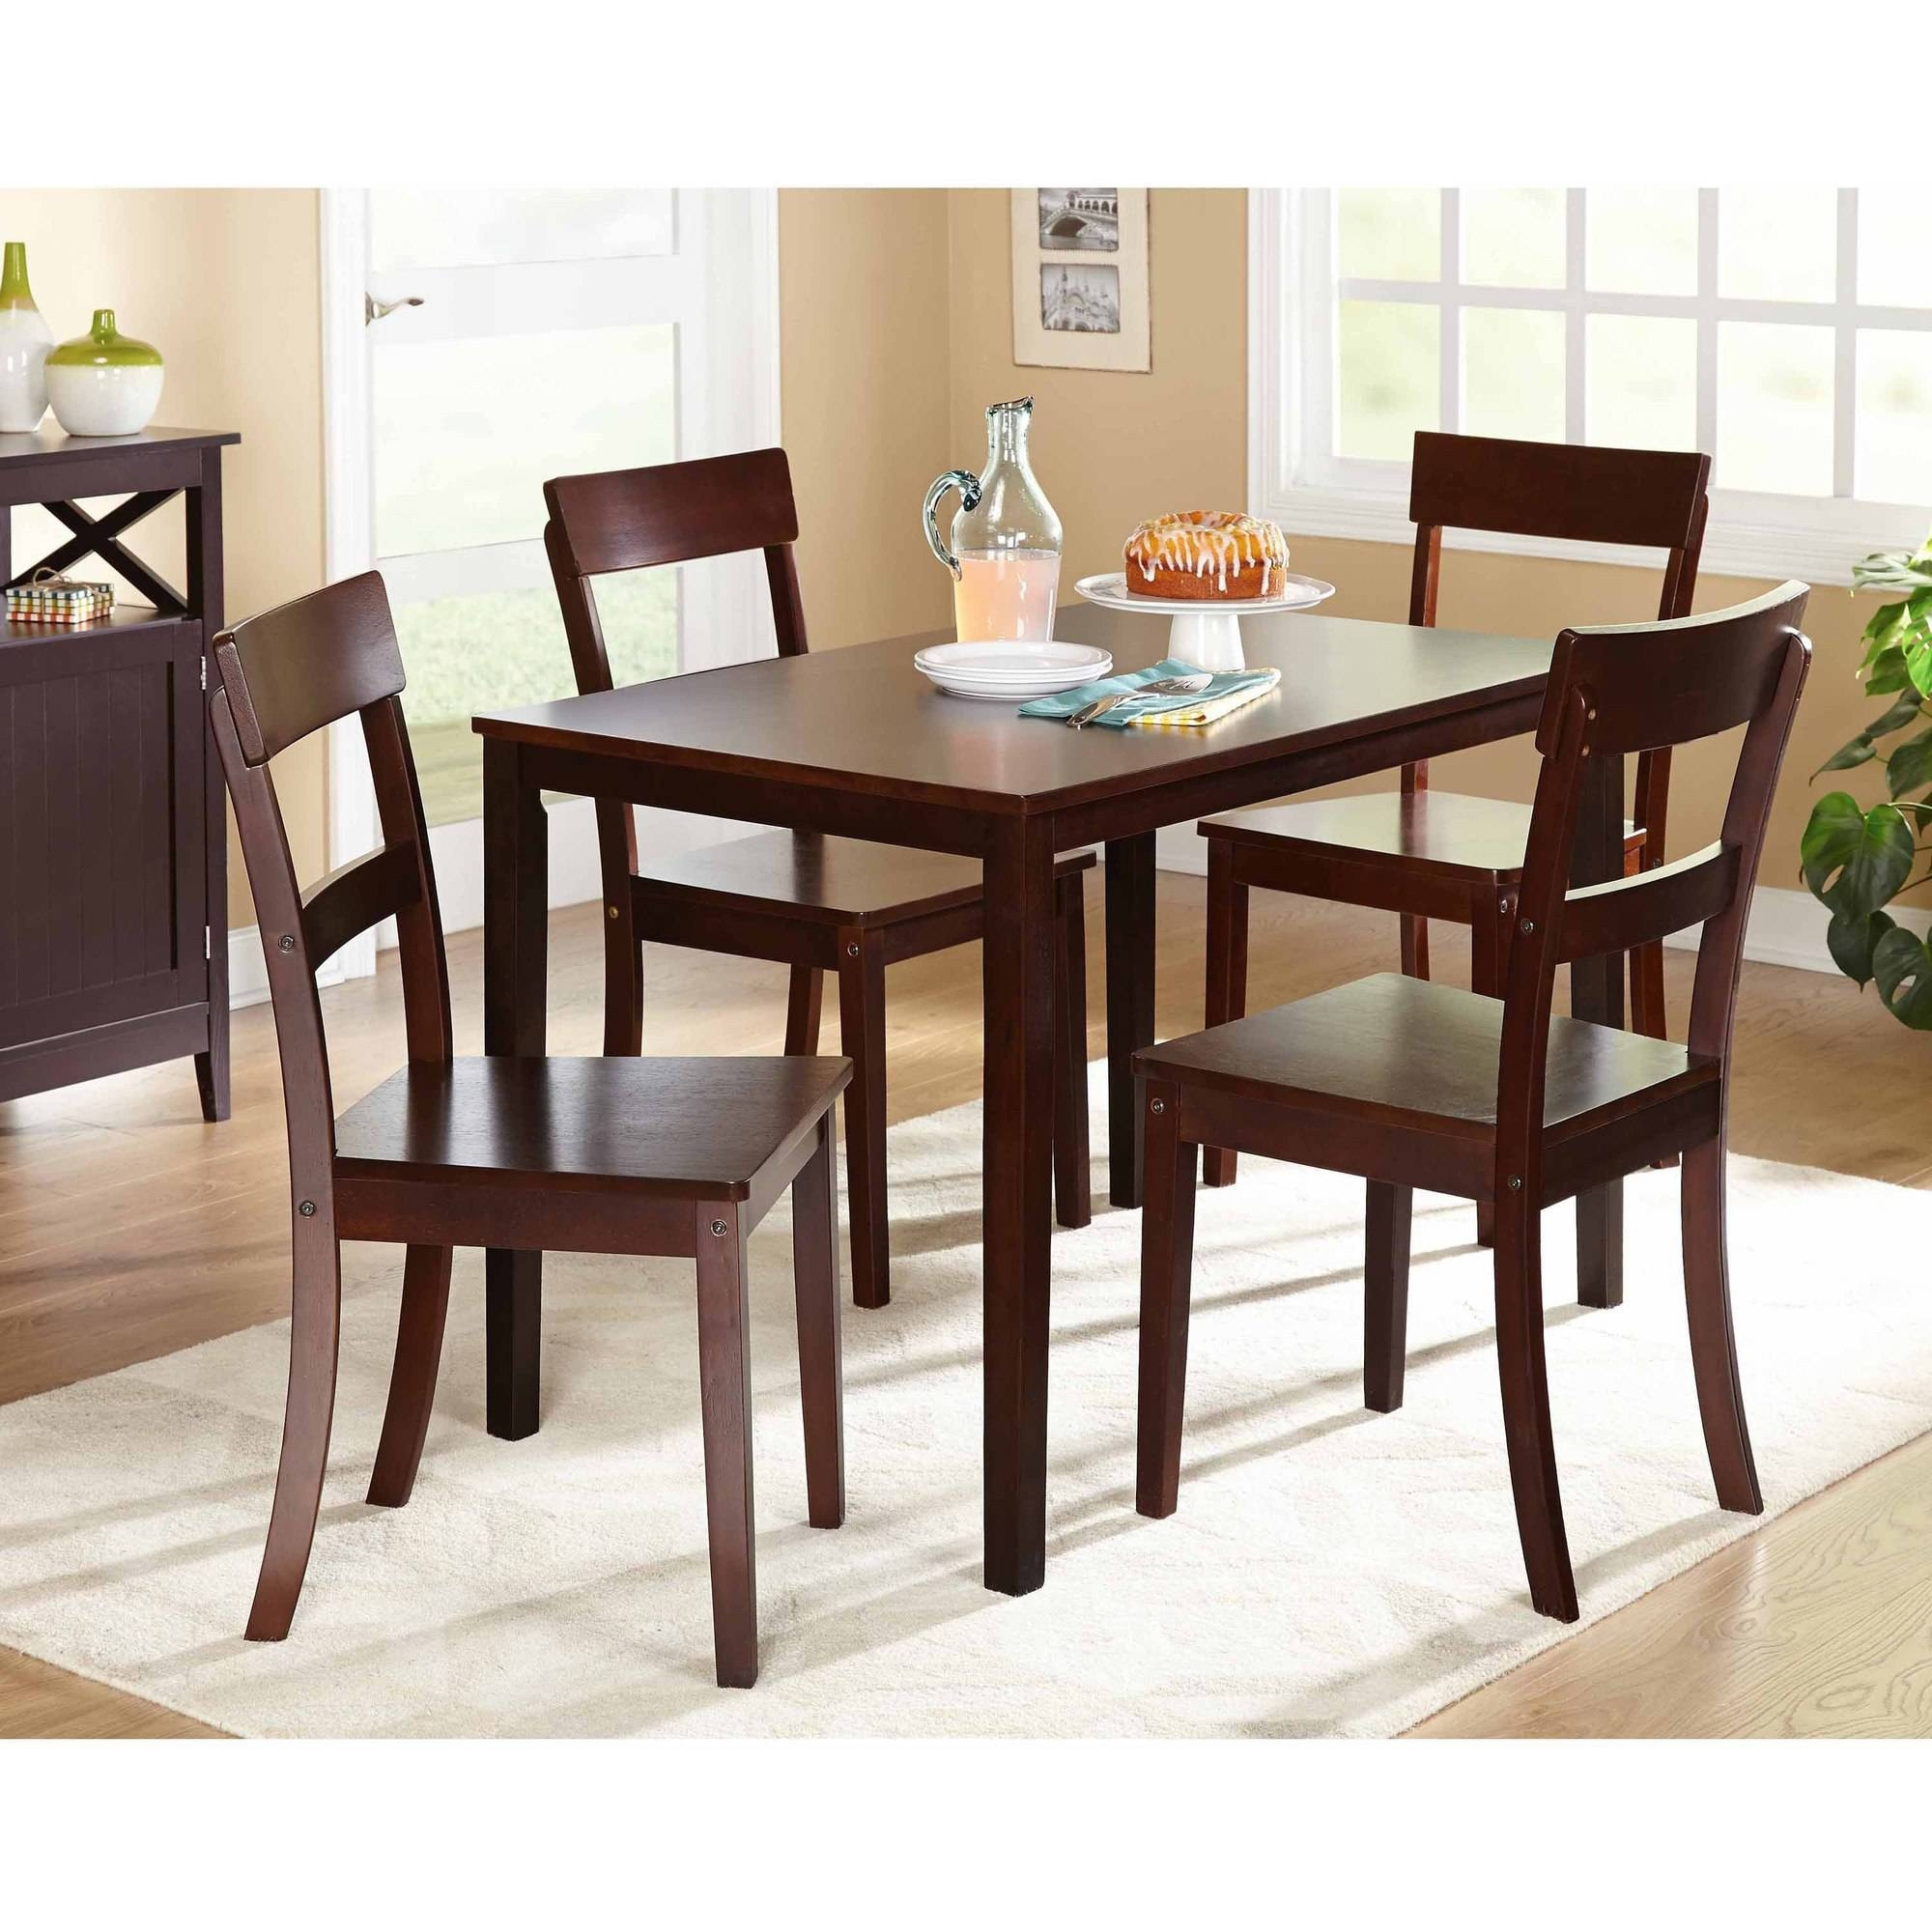 Dining Room Table and Chairs Walmart – Opnodes